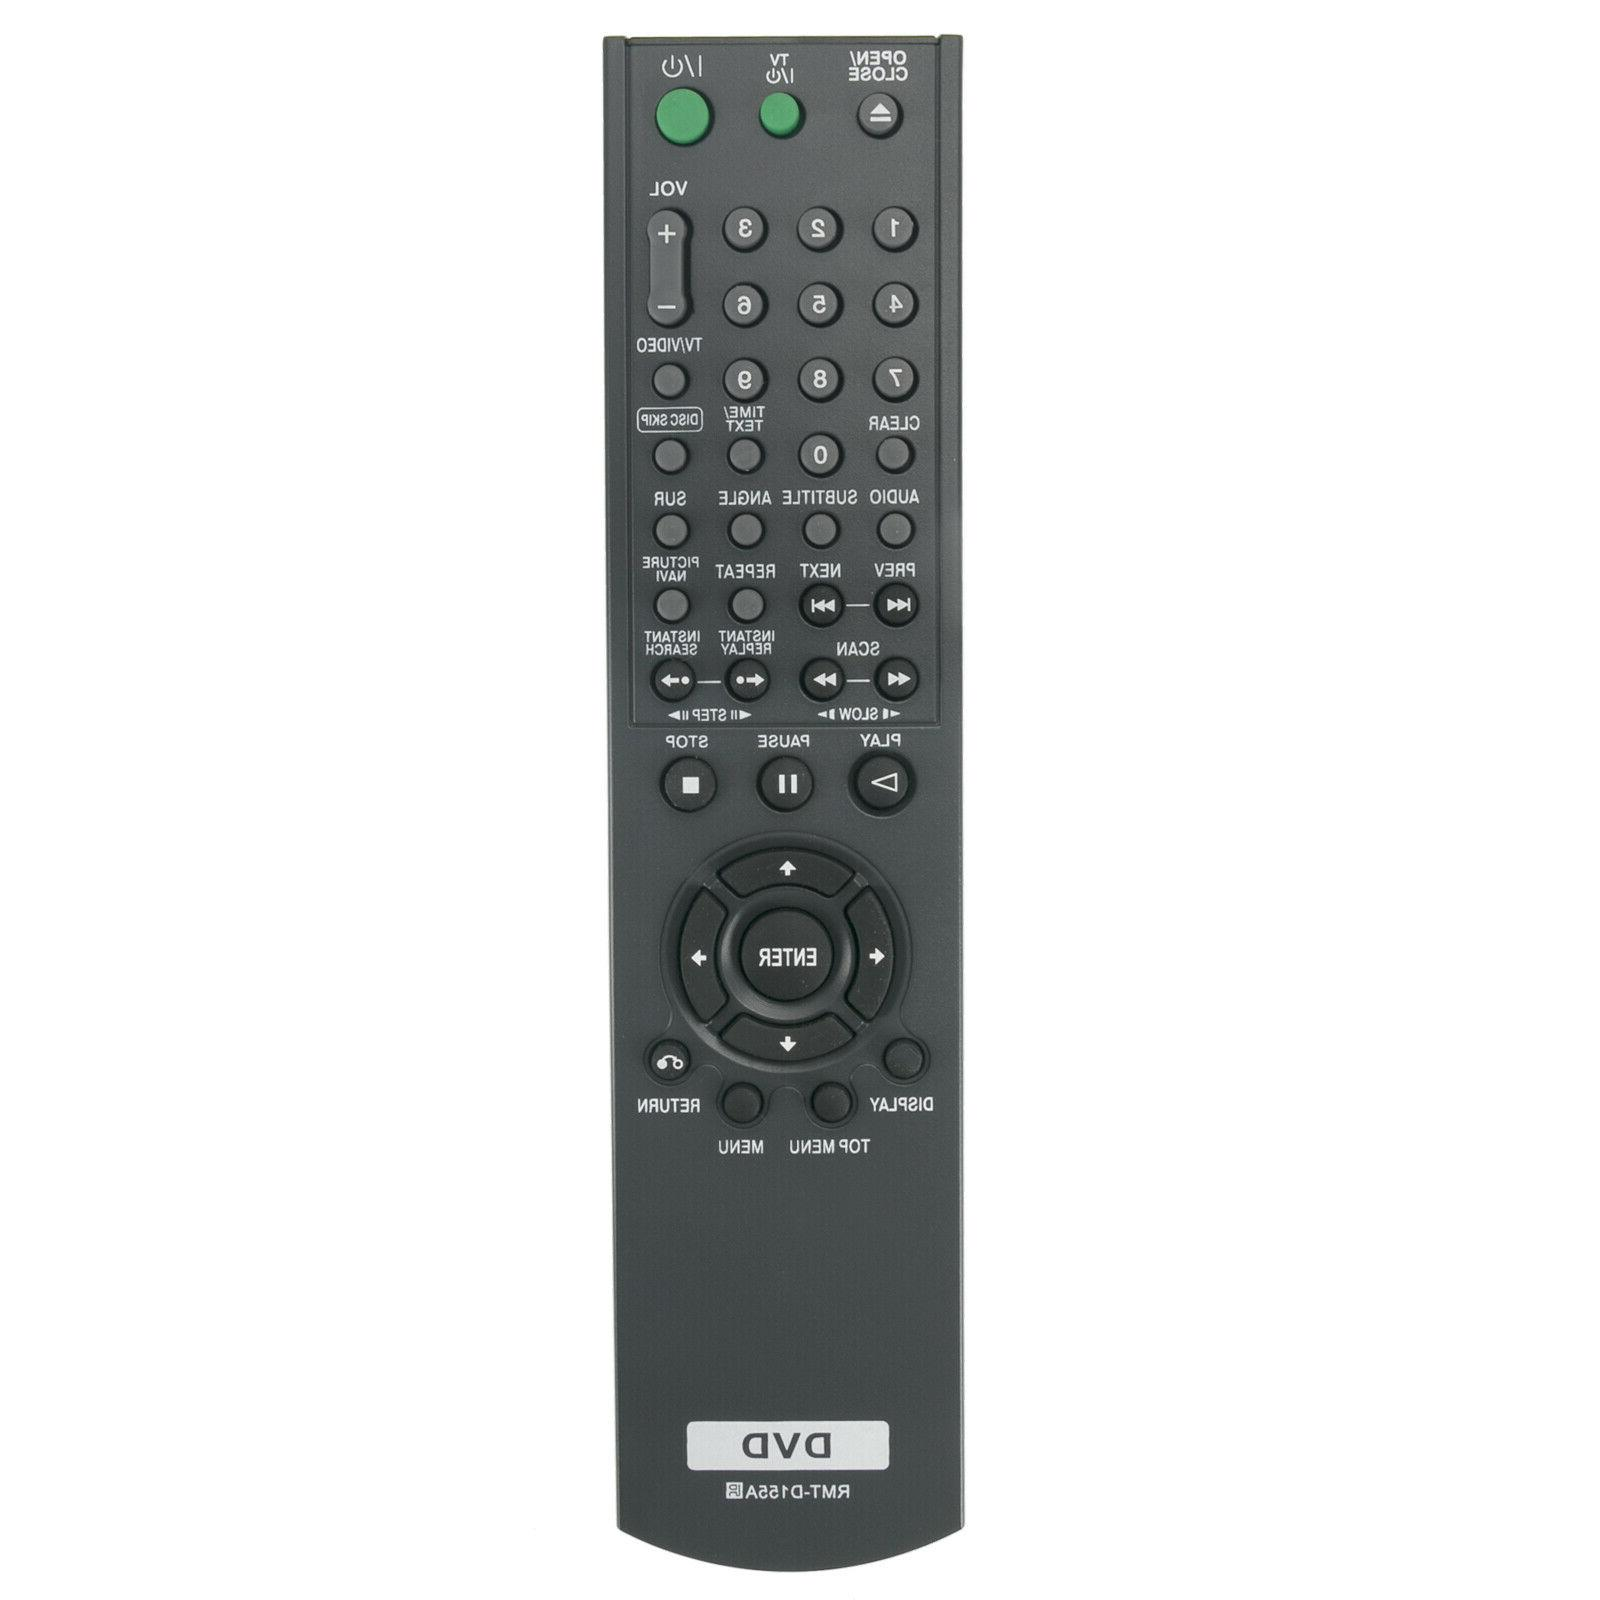 New Control RMT-D155A For Sony Player DVPNC665P